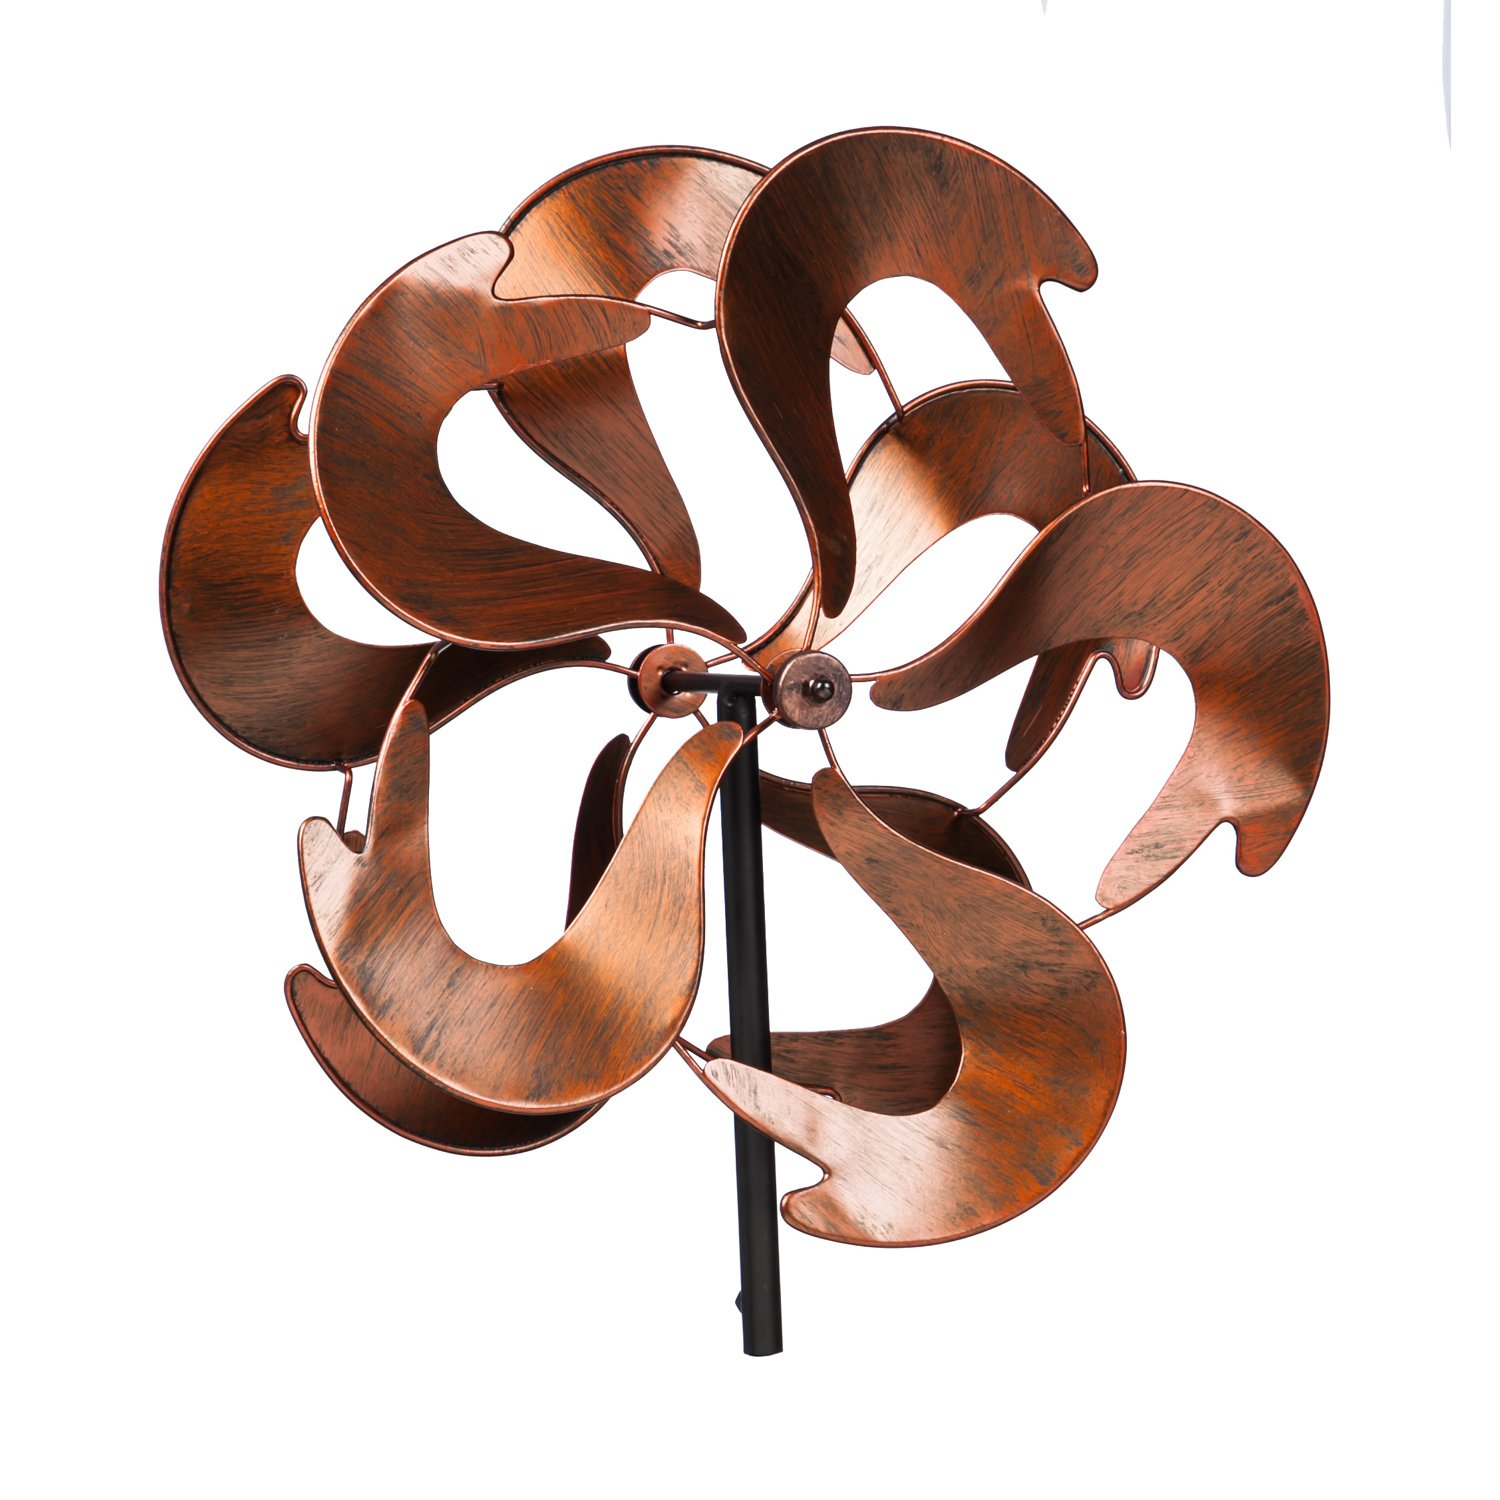 Evergreen Contained Energy Outdoor Safe Kinetic Wind Spinning Topper - Pole Sold Separately